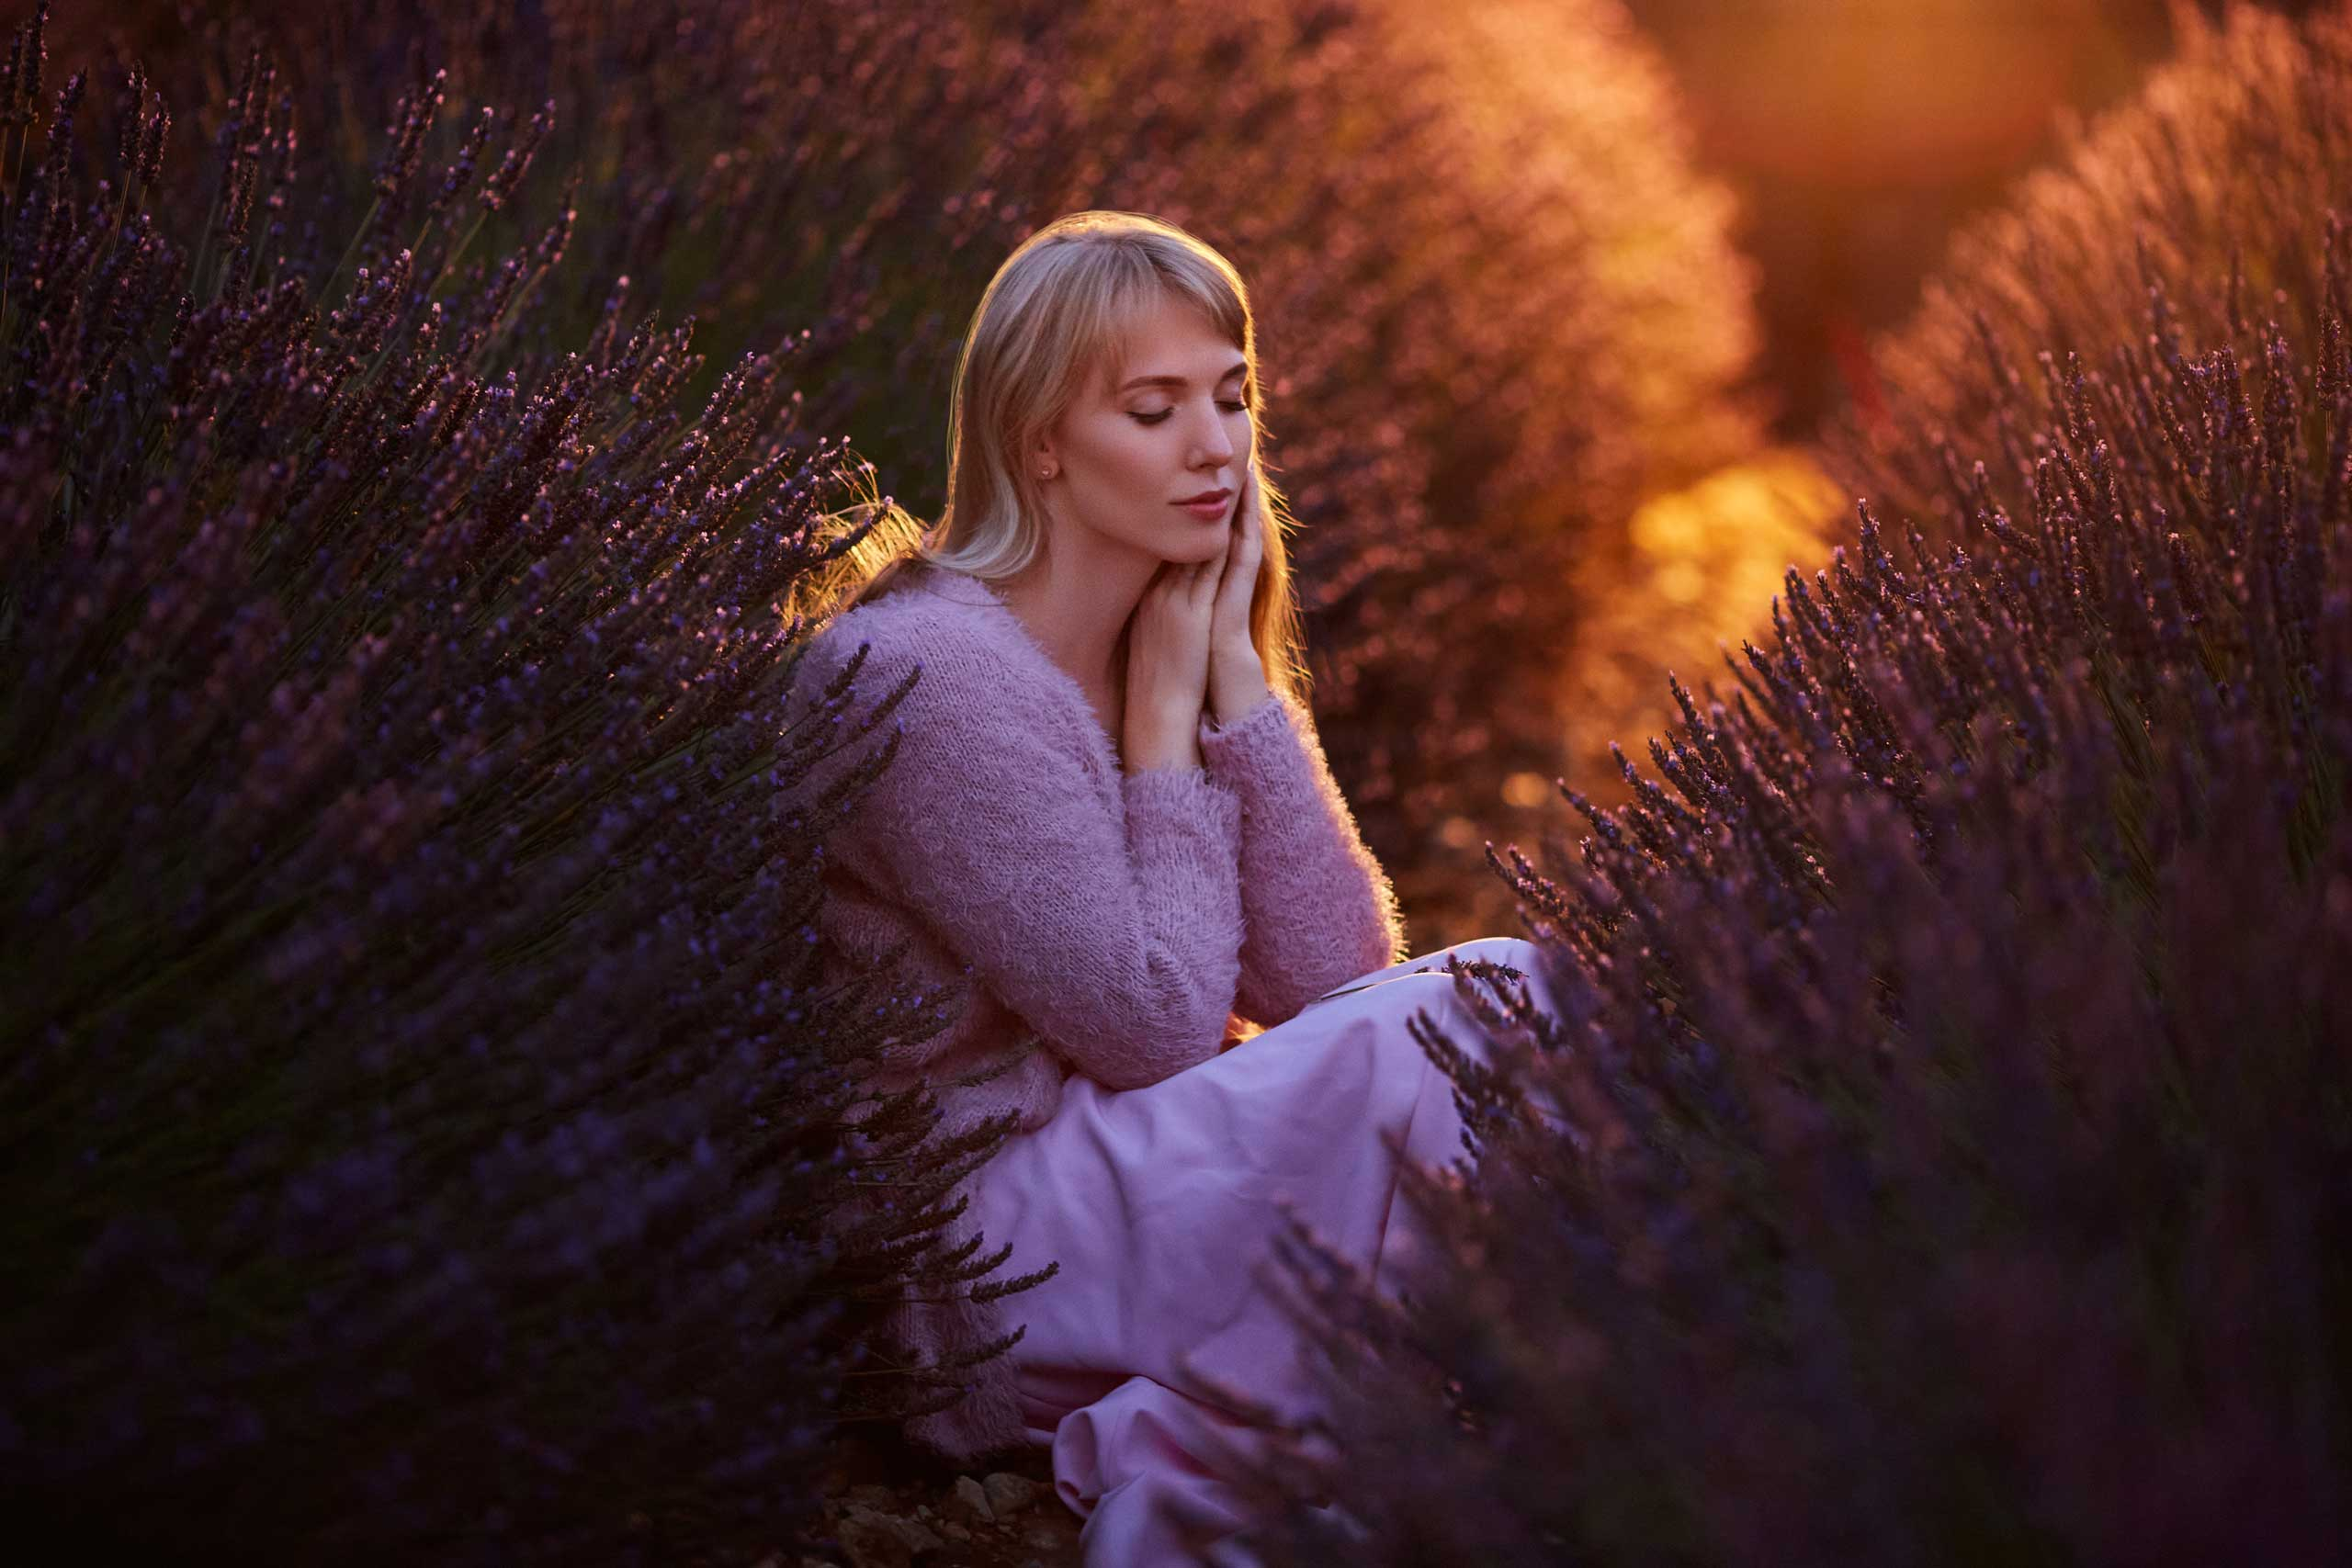 maternity photo session taken by Ramina Magid Photography in Provence lavender fields